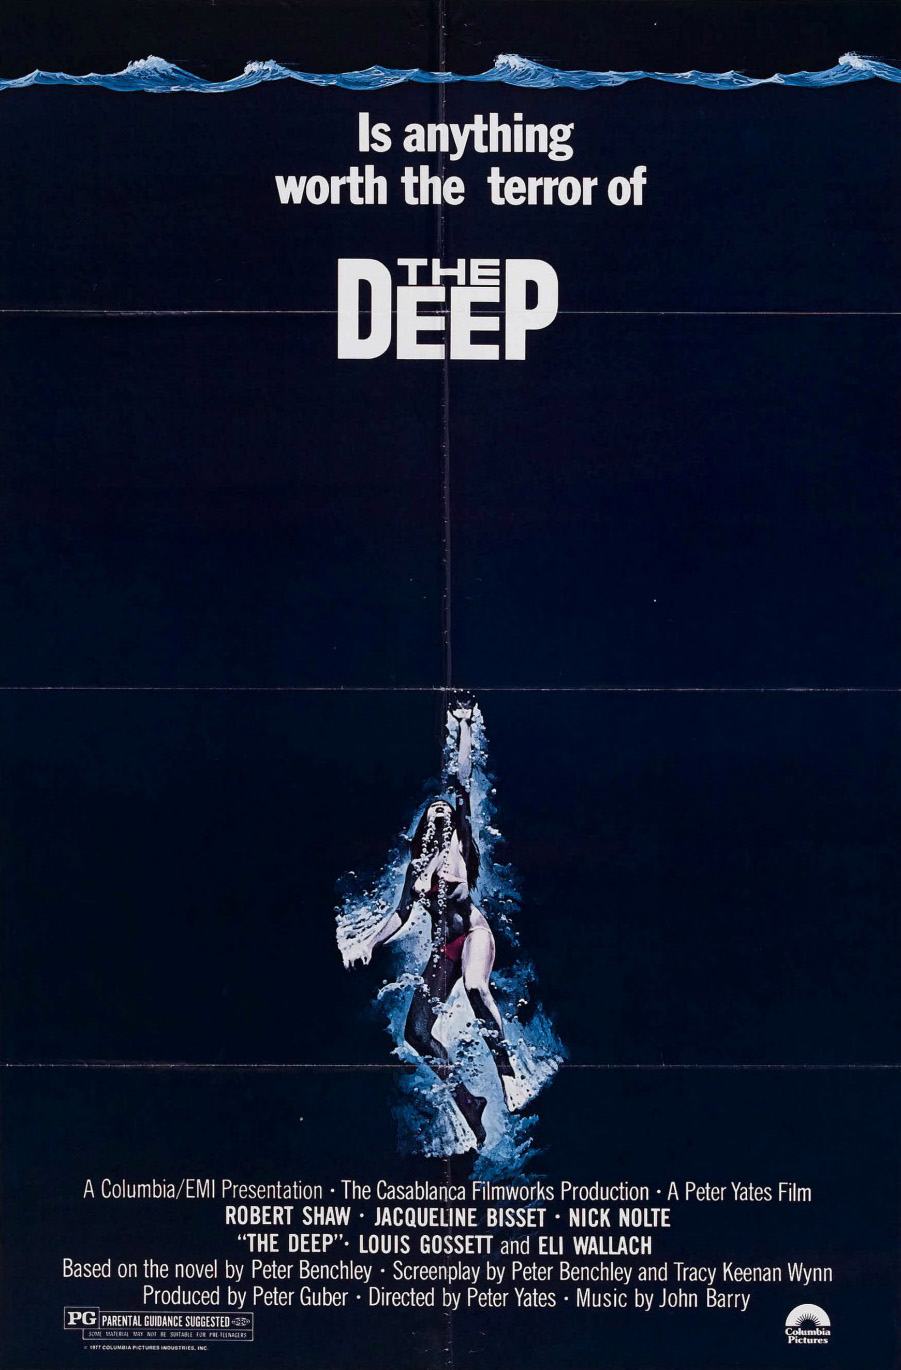 Download Filme The Deep Blue Good-By Torrent 2022 Qualidade Hd